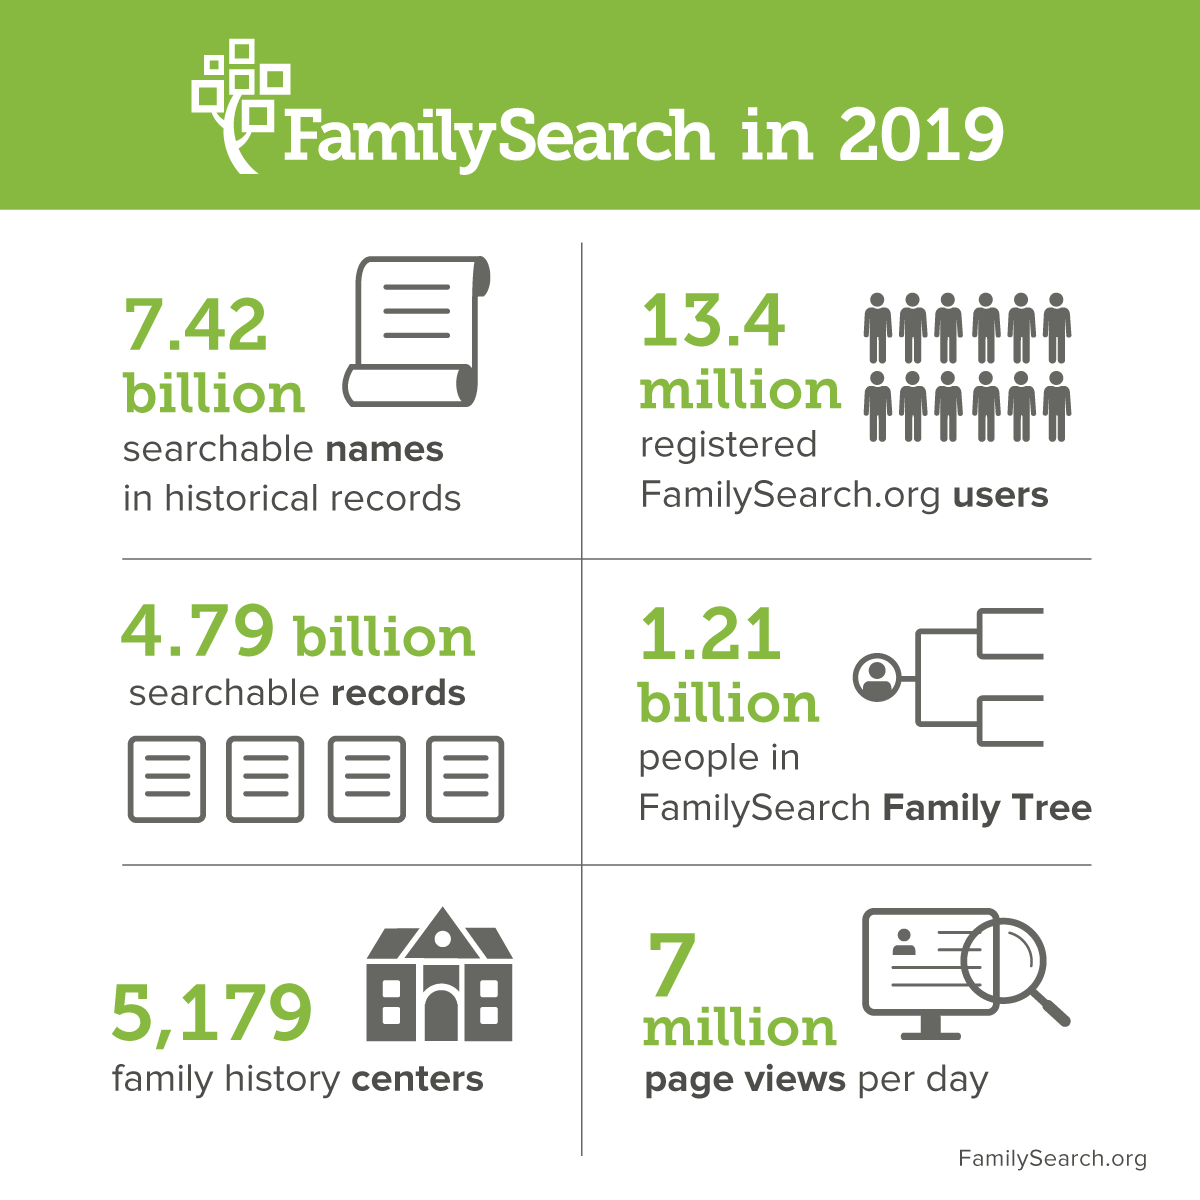 An overview of FamilySearch since it was established 125 years ago as the Genealogical Society of Utah.